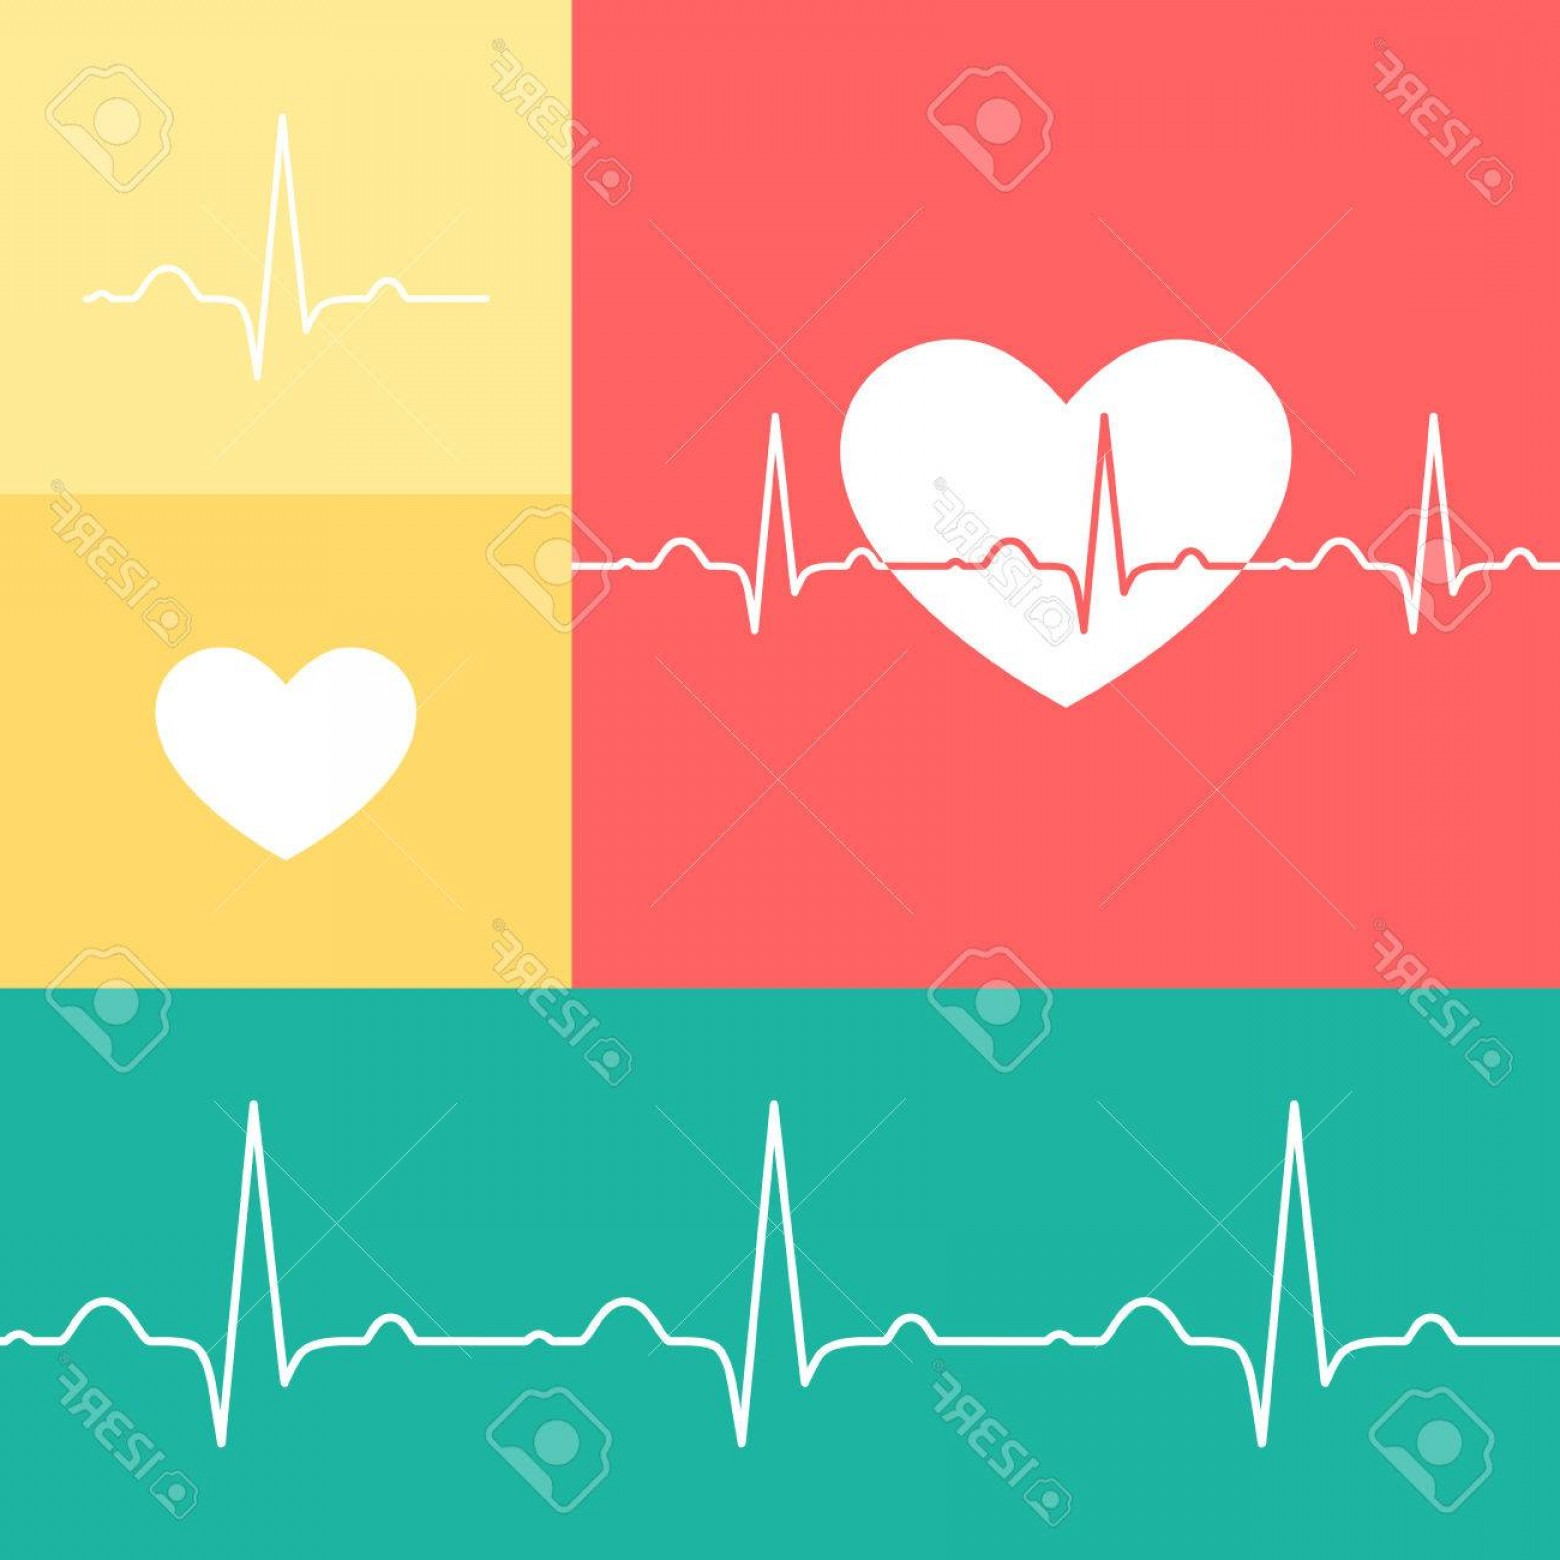 Heart With EKG Line Vector: Photostock Vector Heart And Ekg Line Vector Icons On Red Yellow And Teal Background